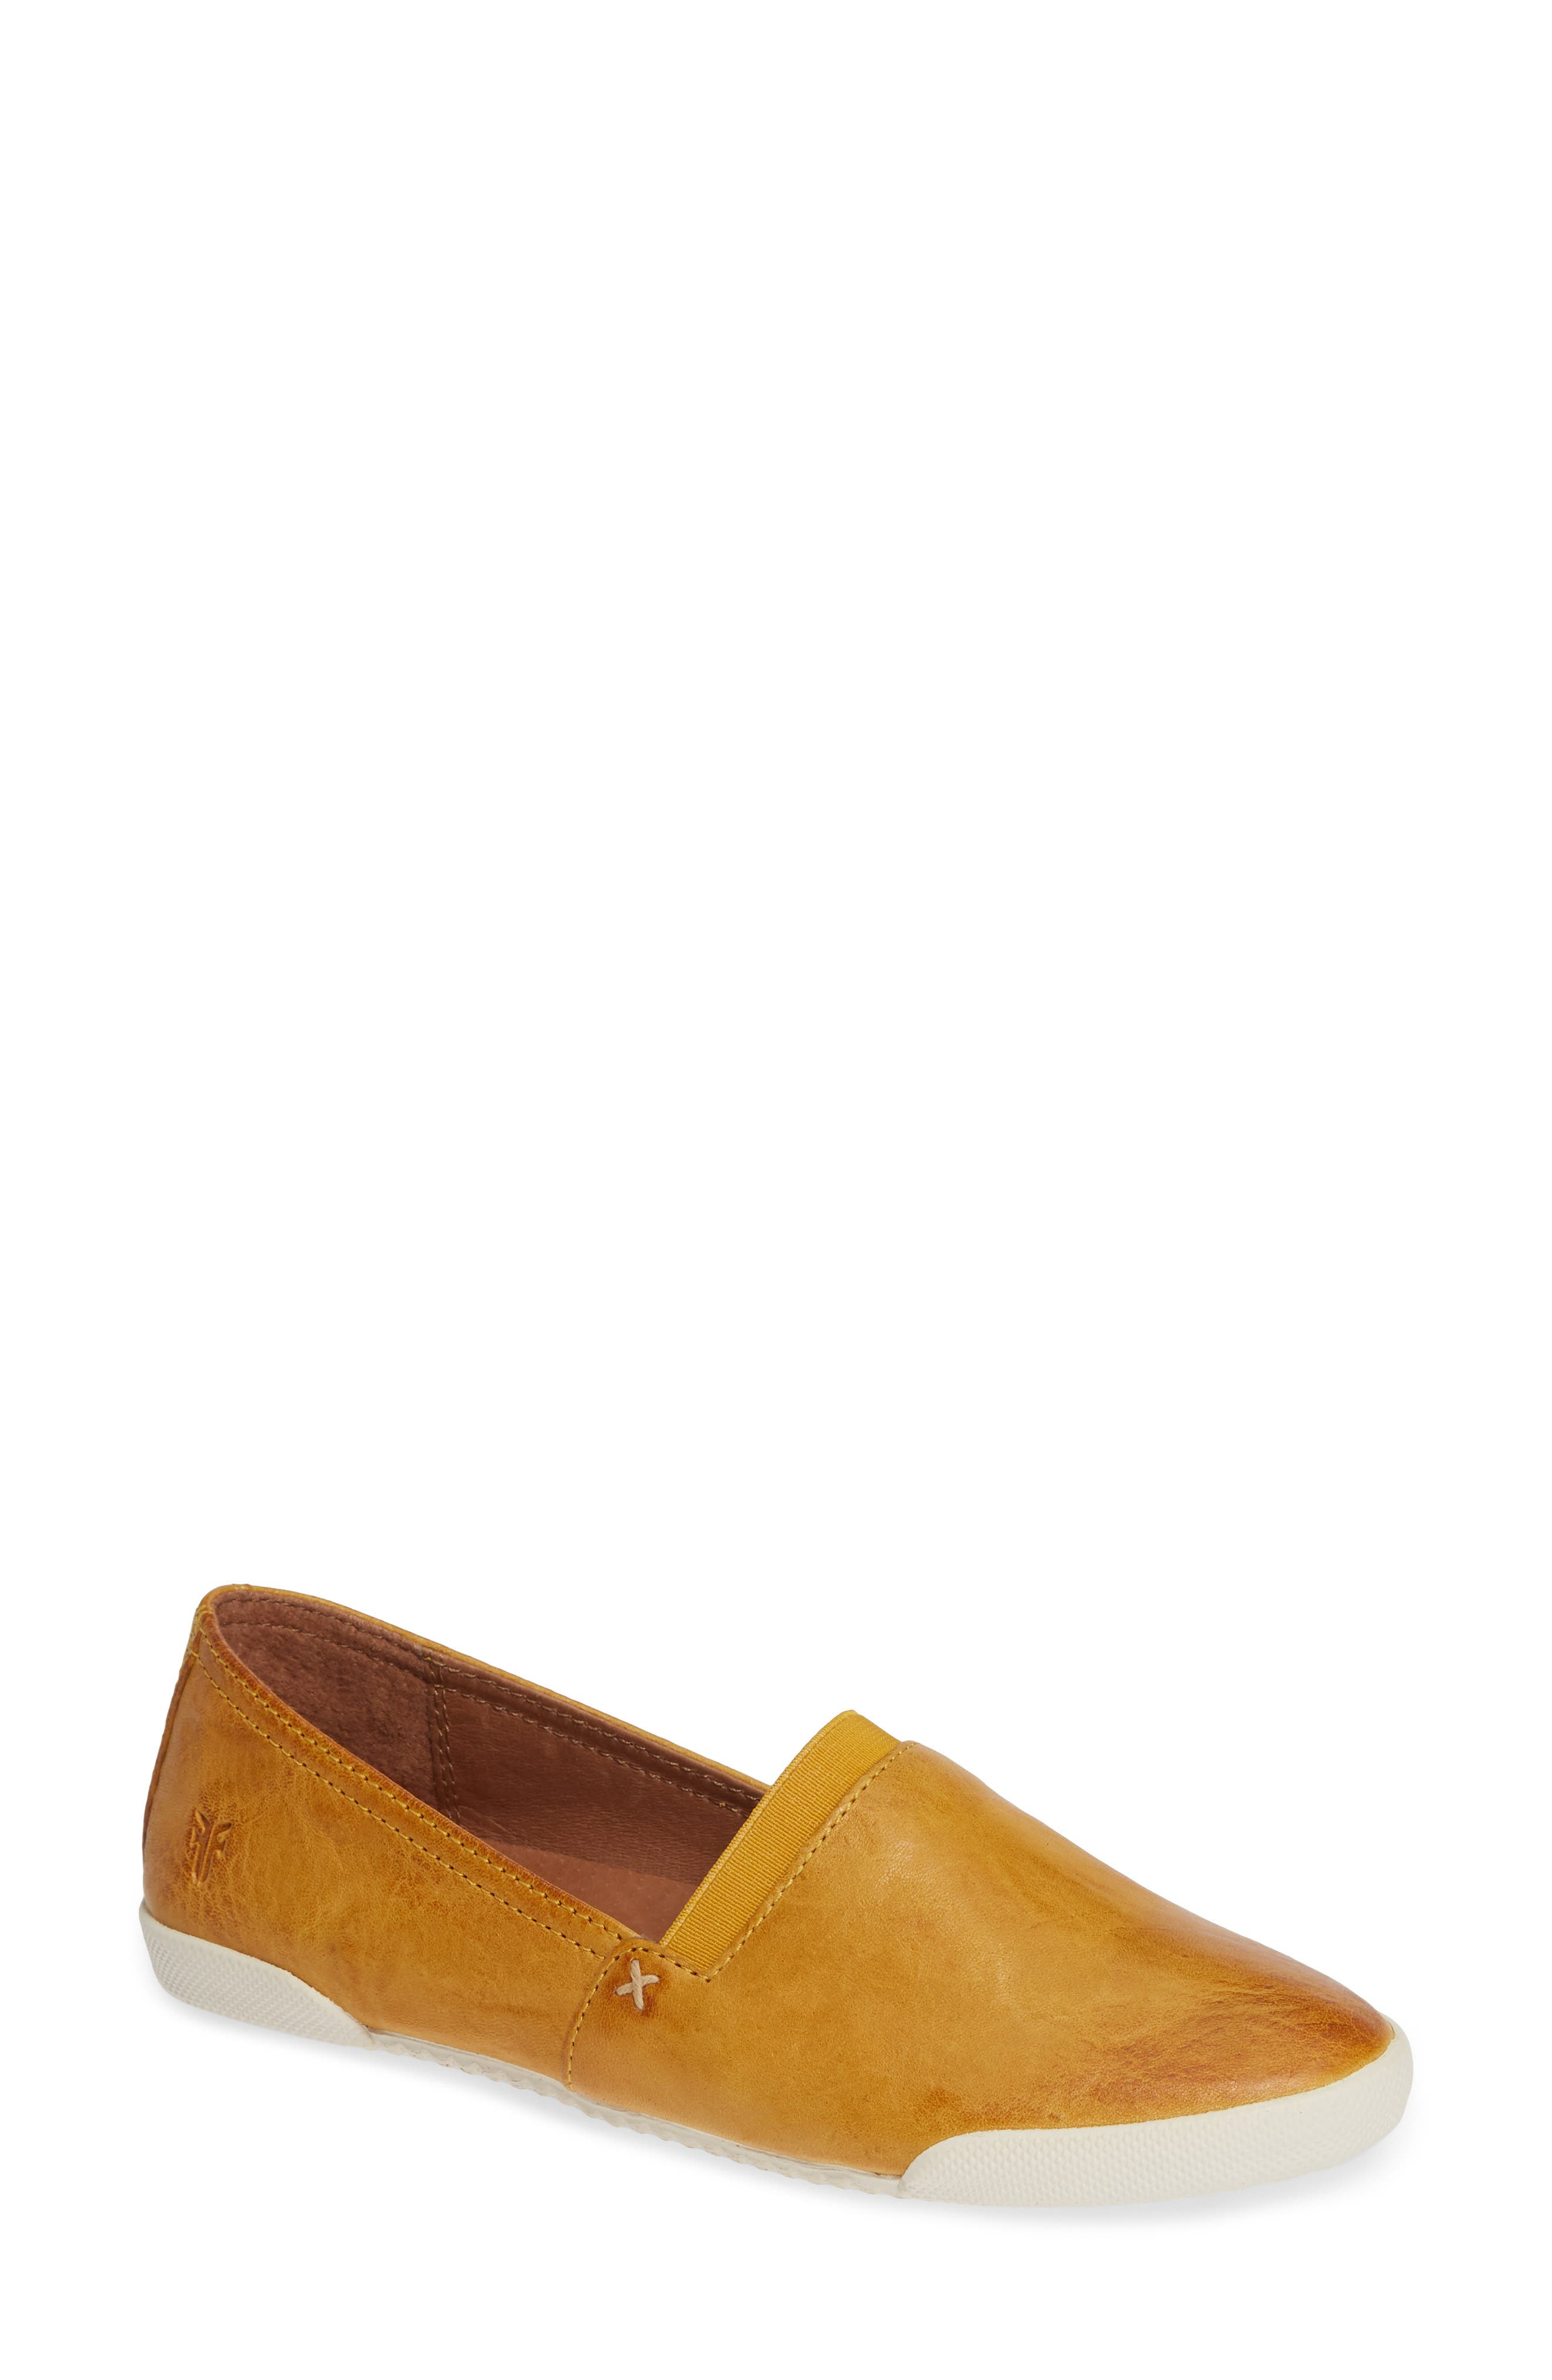 'Melanie' Slip-On,                             Main thumbnail 1, color,                             SUNRISE LEATHER